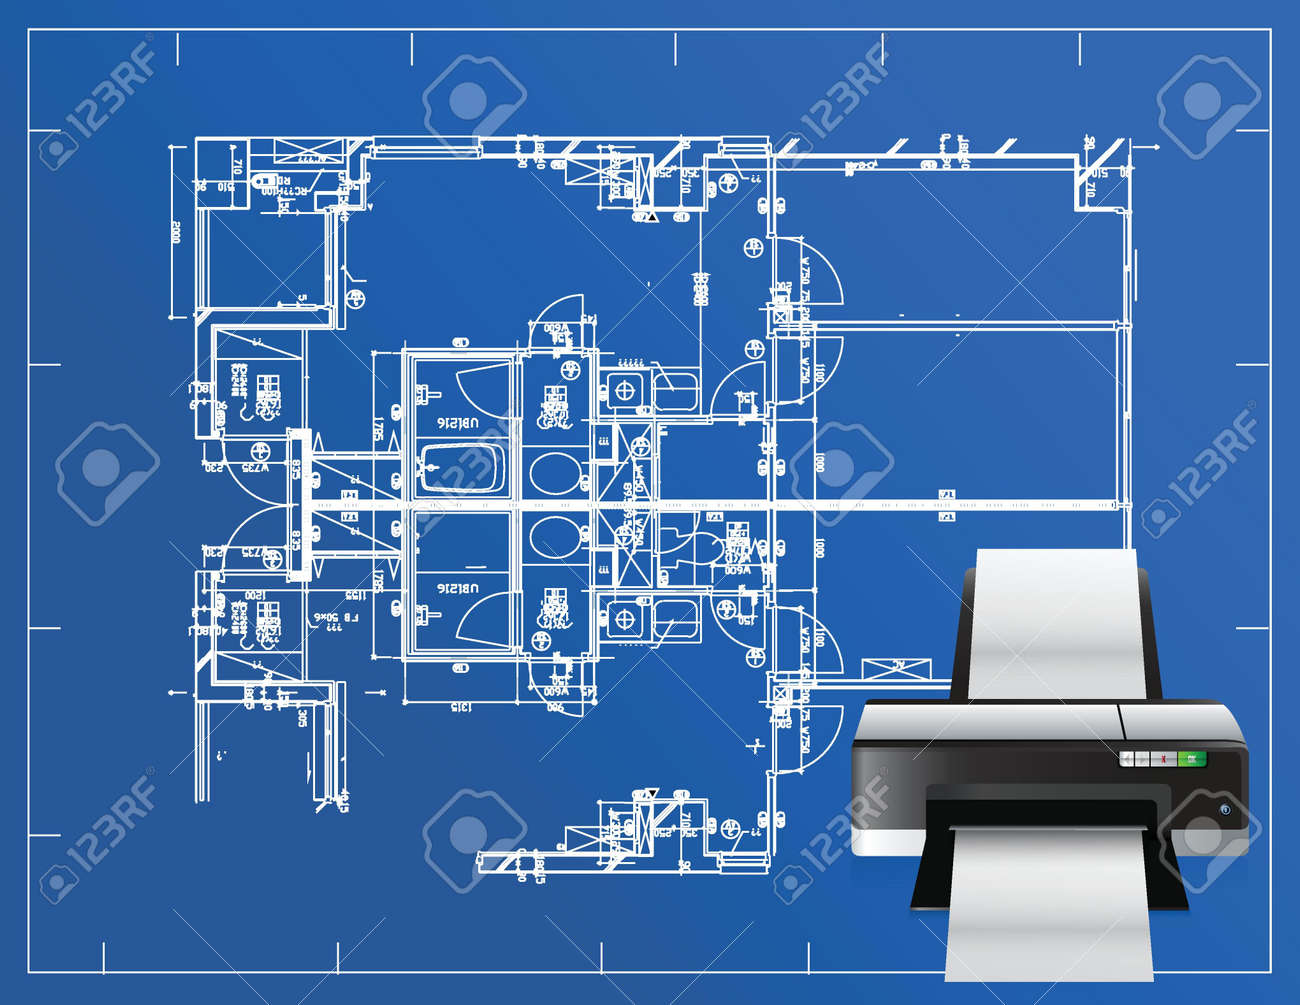 Printer blueprint illustration business design concept graphic printer blueprint illustration business design concept graphic foto de archivo 18728779 malvernweather Image collections